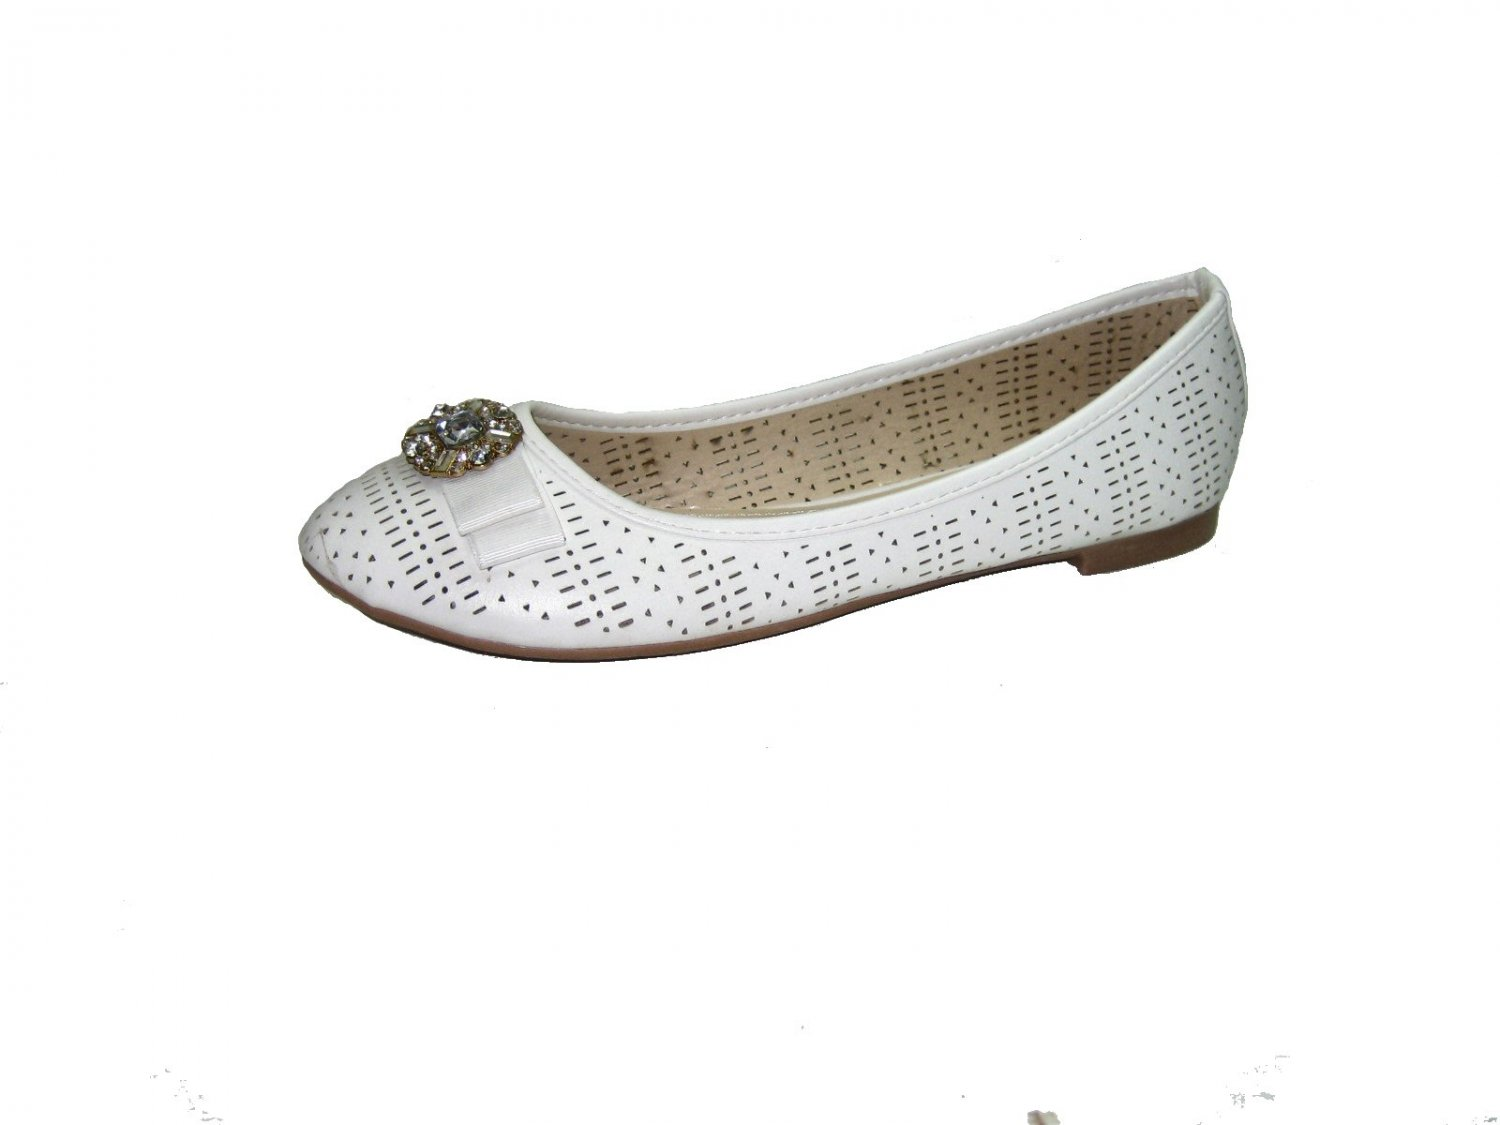 Top Moda SB-25 ballerina flats slip on pumps rhinestone bejeweled bow toe shoes white size 8